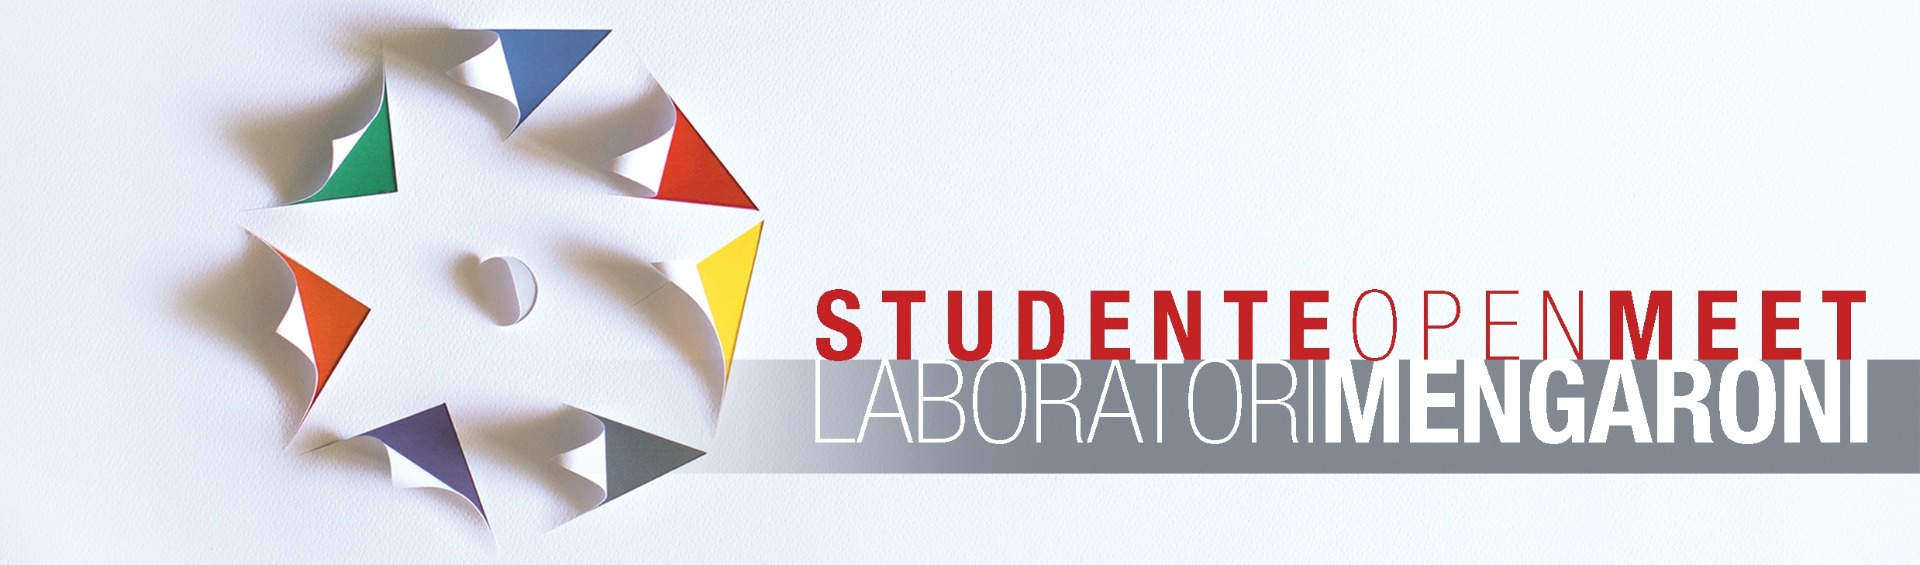 Laboratori Mengaroni - Studente Open Meet